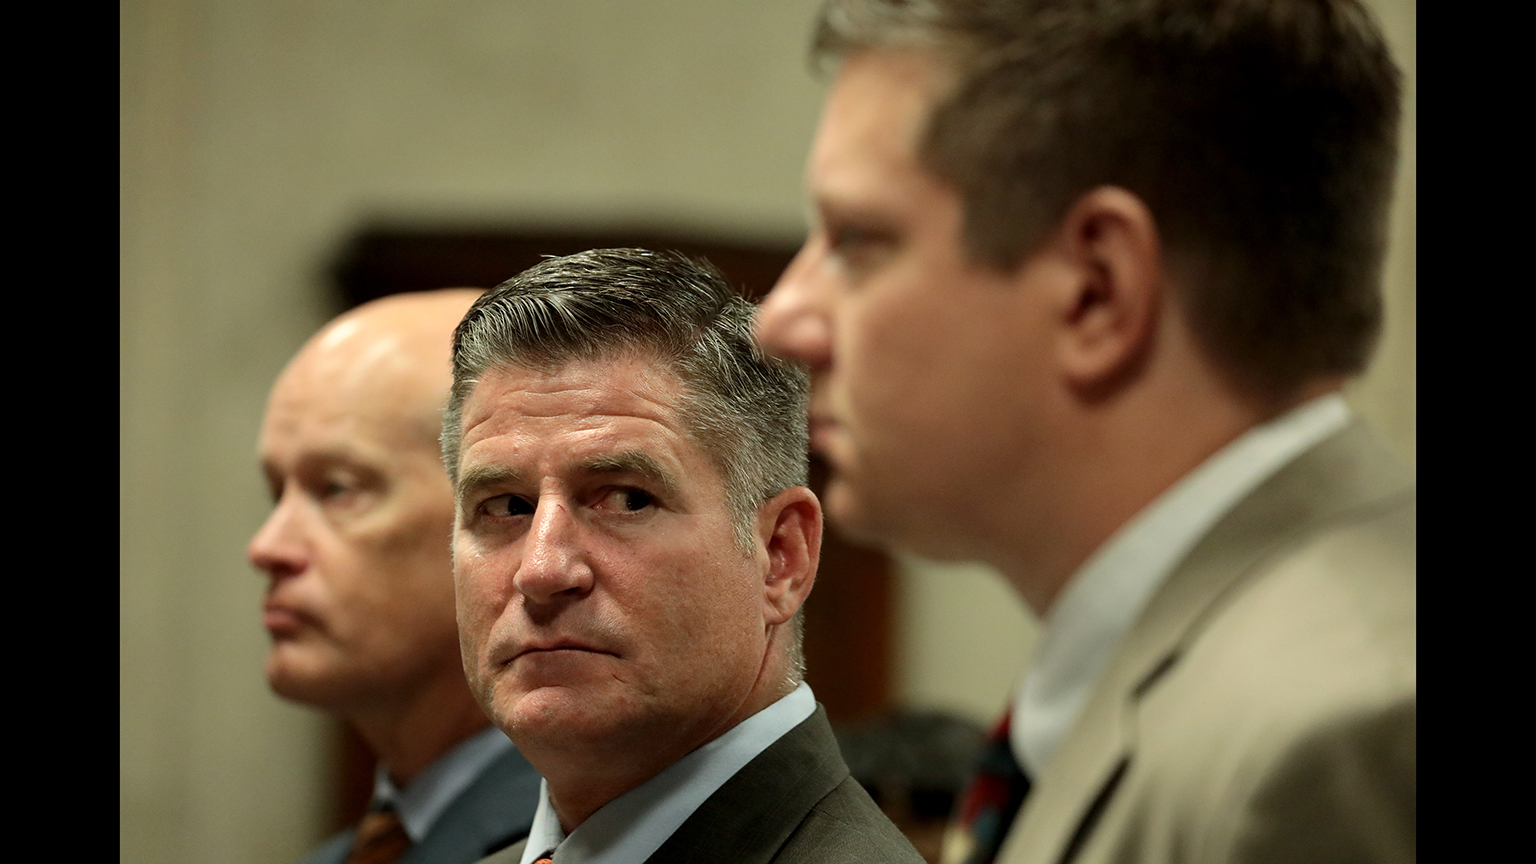 From left: Special prosecutor Joe McMahon, attorney Daniel Herbert and his client, Chicago police Officer Jason Van Dyke, attend a hearing Friday, Aug. 17, 2018. (Antonio Perez / Chicago Tribune)